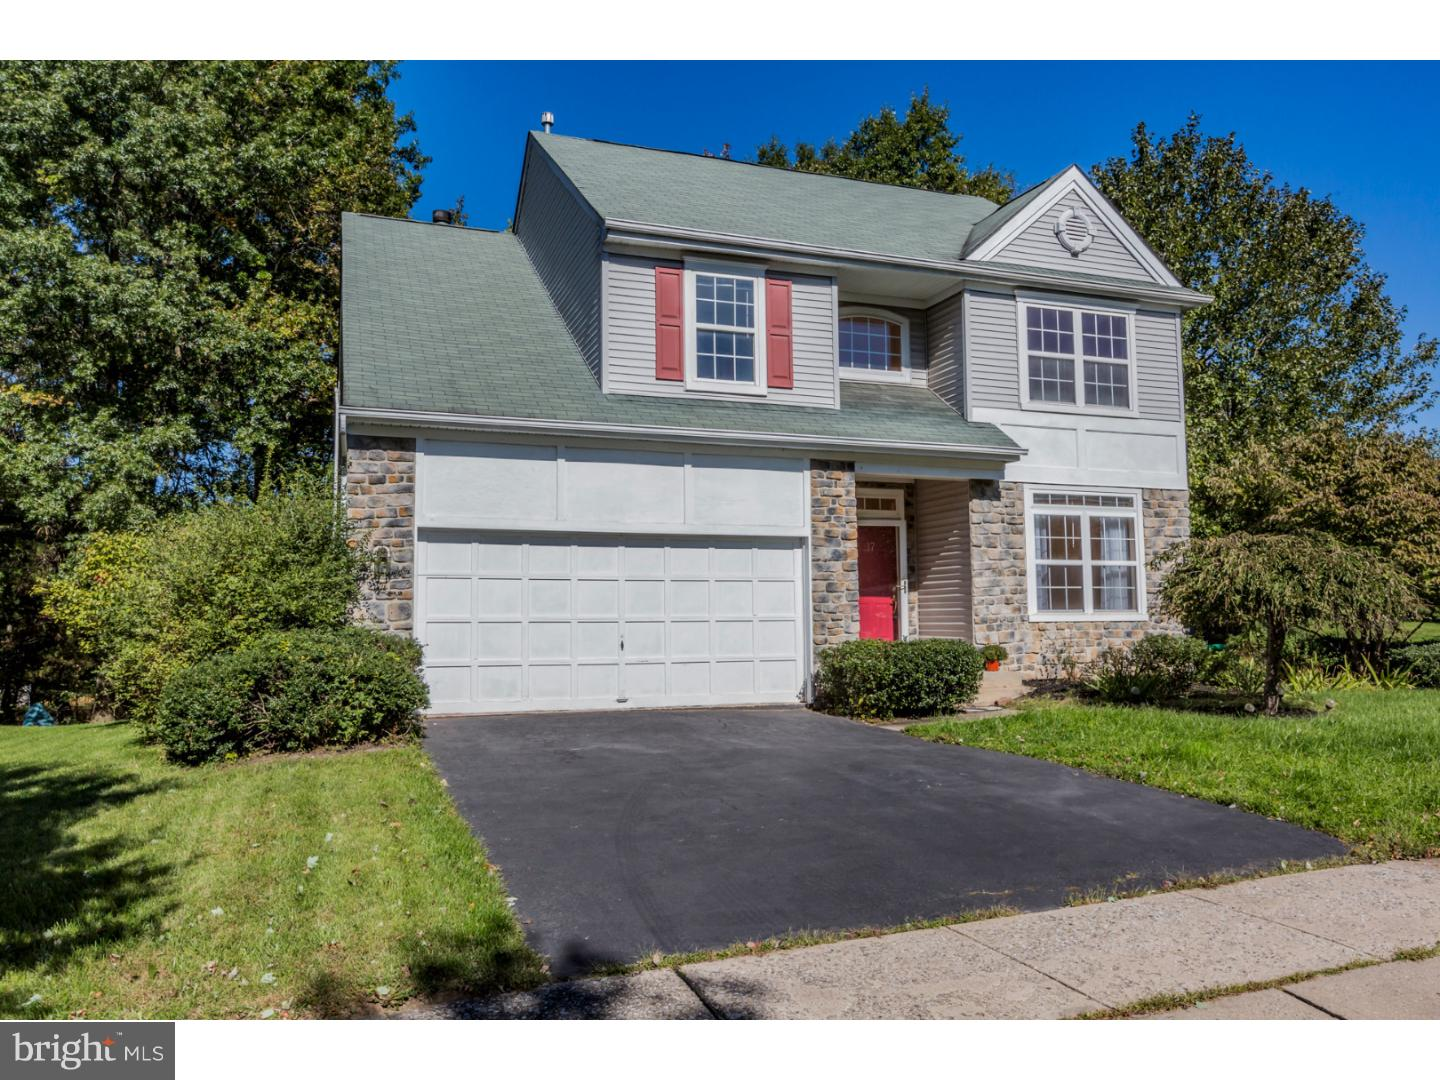 Property for Sale at 17 HARVARD Circle Princeton, New Jersey 08540 United States